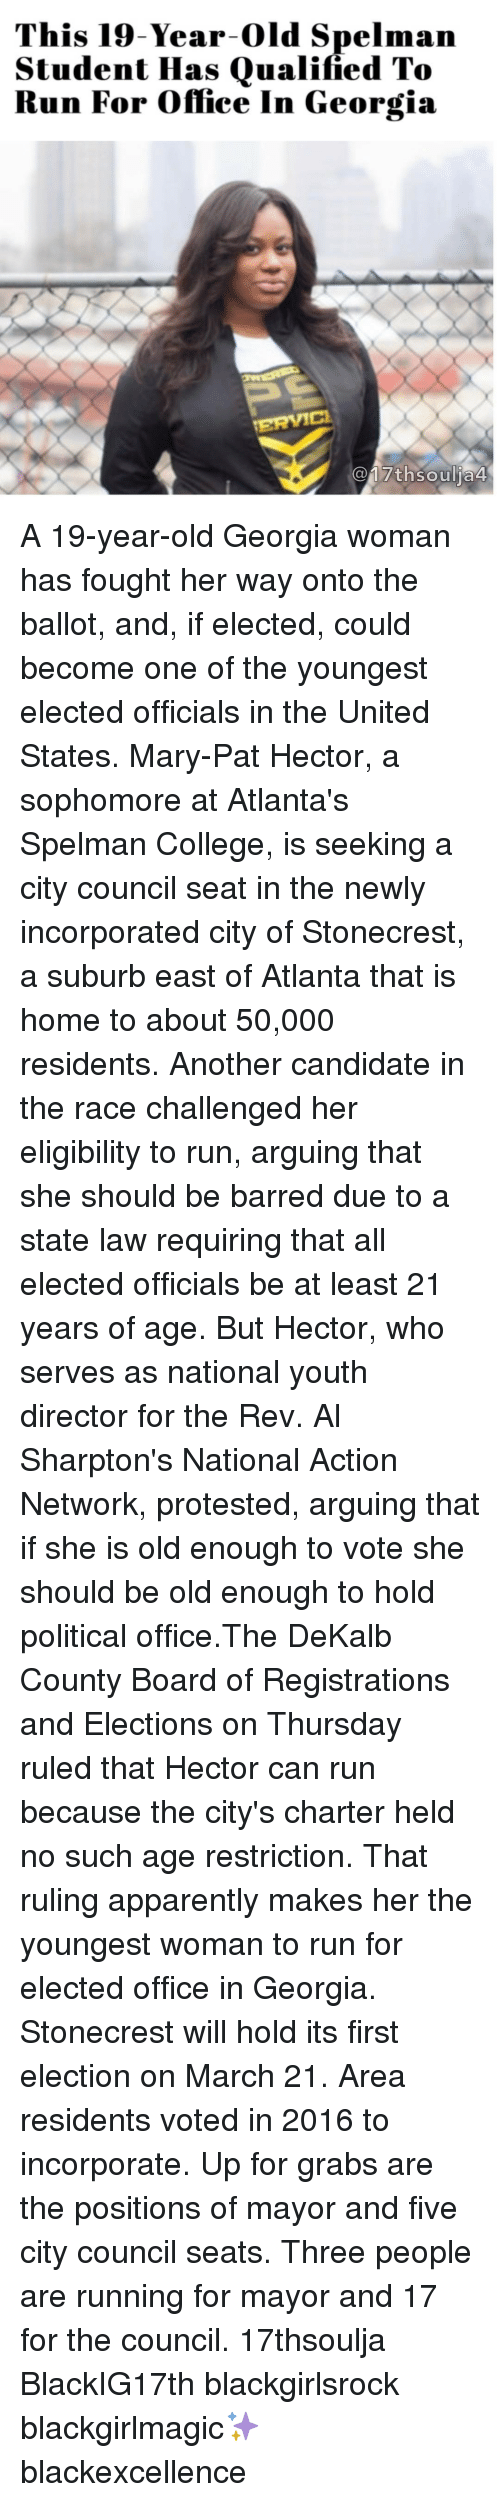 Al Sharpton: This 19-Year-old Spelman  Student Has Qualified To  Run For Office In Georgia  th soulia4 A 19-year-old Georgia woman has fought her way onto the ballot, and, if elected, could become one of the youngest elected officials in the United States. Mary-Pat Hector, a sophomore at Atlanta's Spelman College, is seeking a city council seat in the newly incorporated city of Stonecrest, a suburb east of Atlanta that is home to about 50,000 residents. Another candidate in the race challenged her eligibility to run, arguing that she should be barred due to a state law requiring that all elected officials be at least 21 years of age. But Hector, who serves as national youth director for the Rev. Al Sharpton's National Action Network, protested, arguing that if she is old enough to vote she should be old enough to hold political office.The DeKalb County Board of Registrations and Elections on Thursday ruled that Hector can run because the city's charter held no such age restriction. That ruling apparently makes her the youngest woman to run for elected office in Georgia. Stonecrest will hold its first election on March 21. Area residents voted in 2016 to incorporate. Up for grabs are the positions of mayor and five city council seats. Three people are running for mayor and 17 for the council. 17thsoulja BlackIG17th blackgirlsrock blackgirlmagic✨ blackexcellence